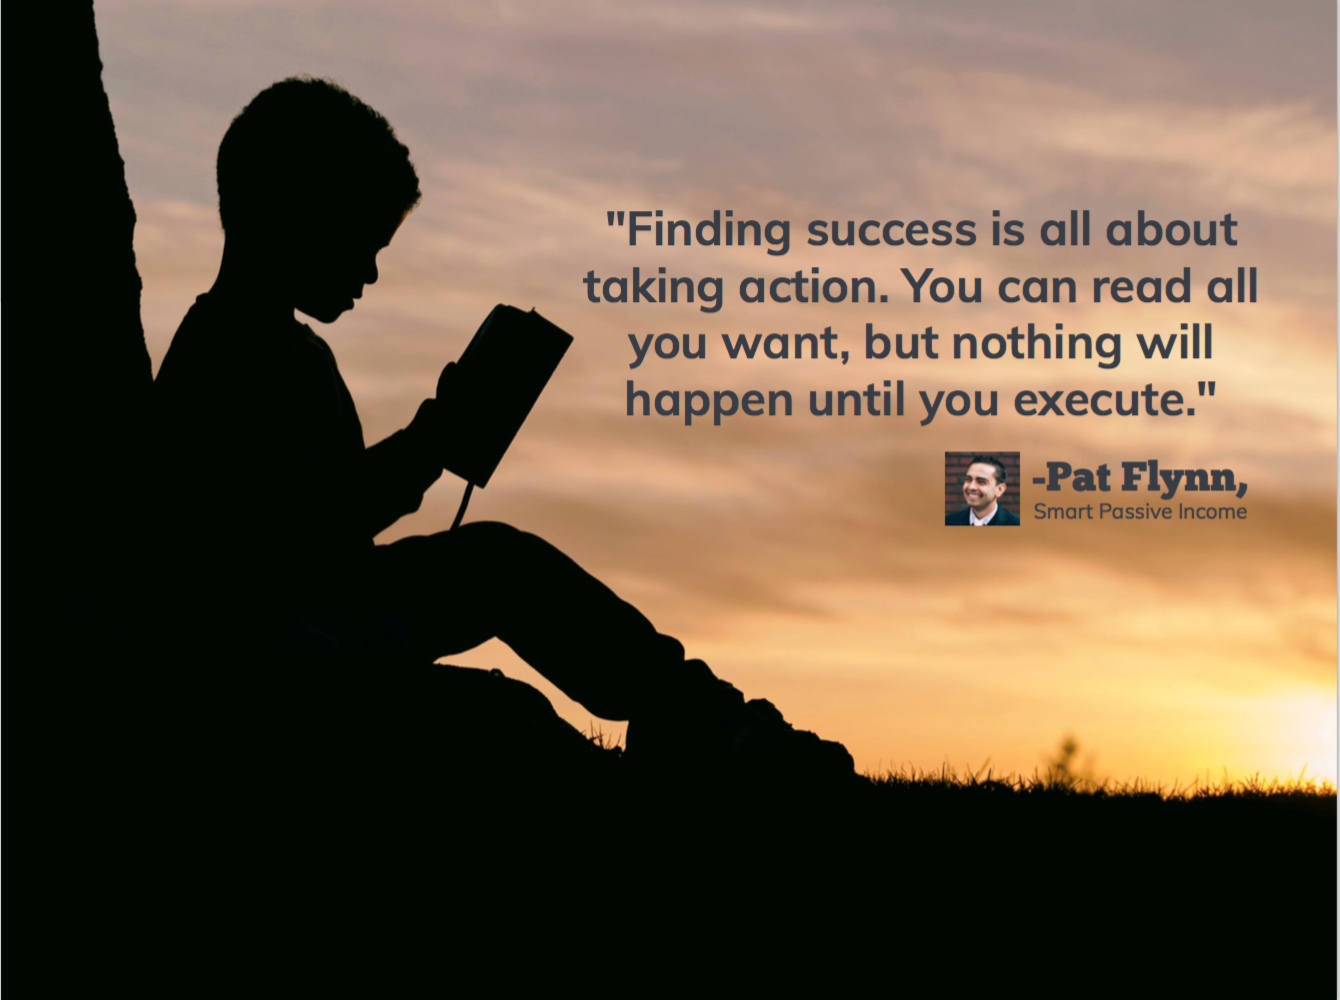 finding successis all about taking action